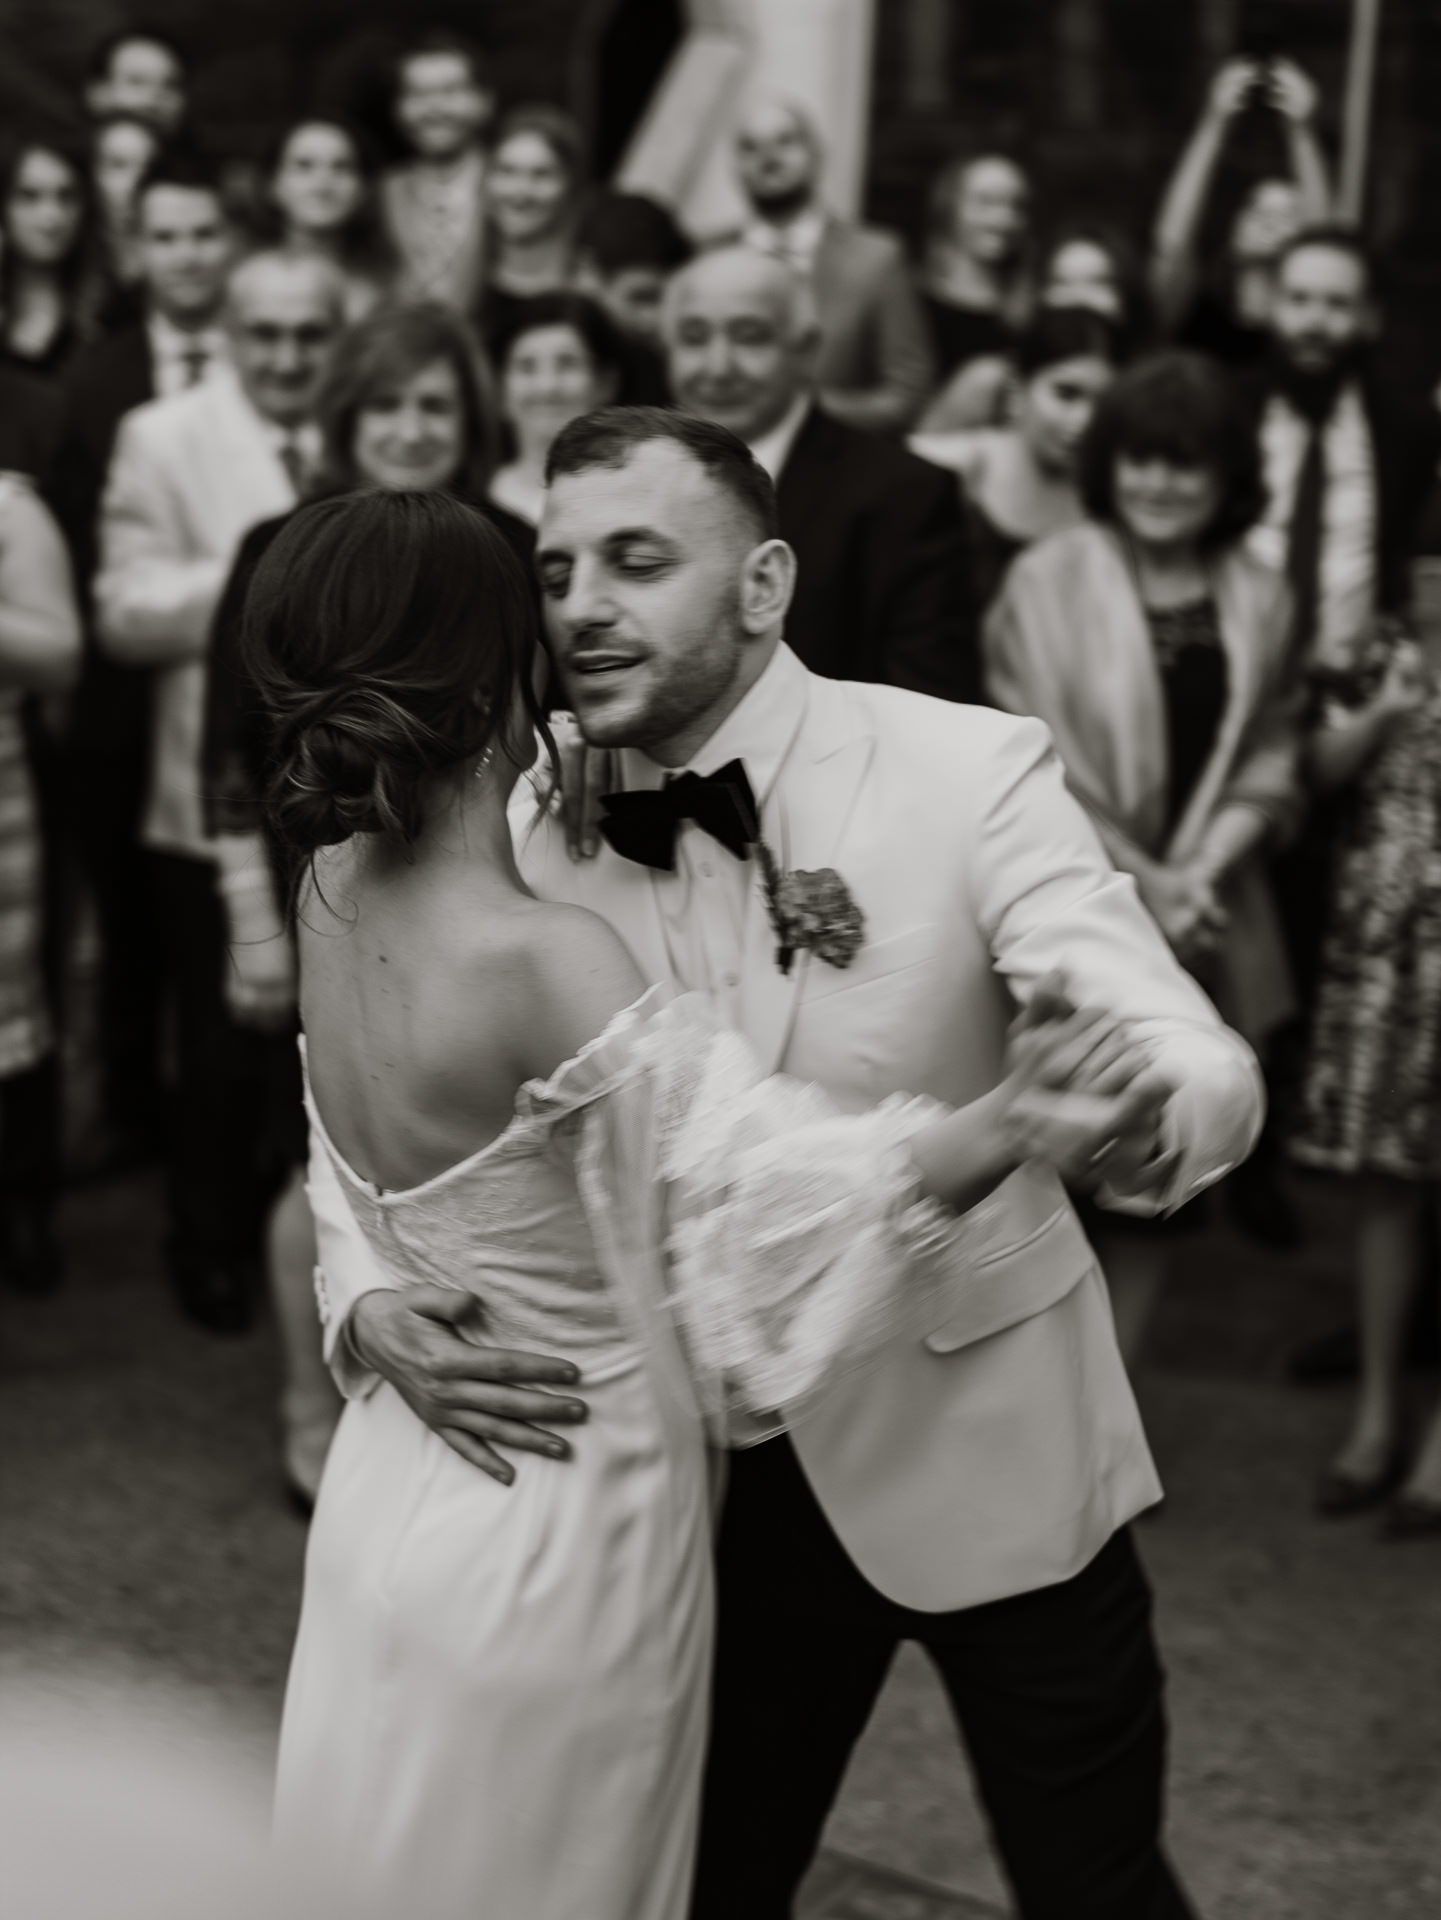 First dance - photo by Joel and Justyna